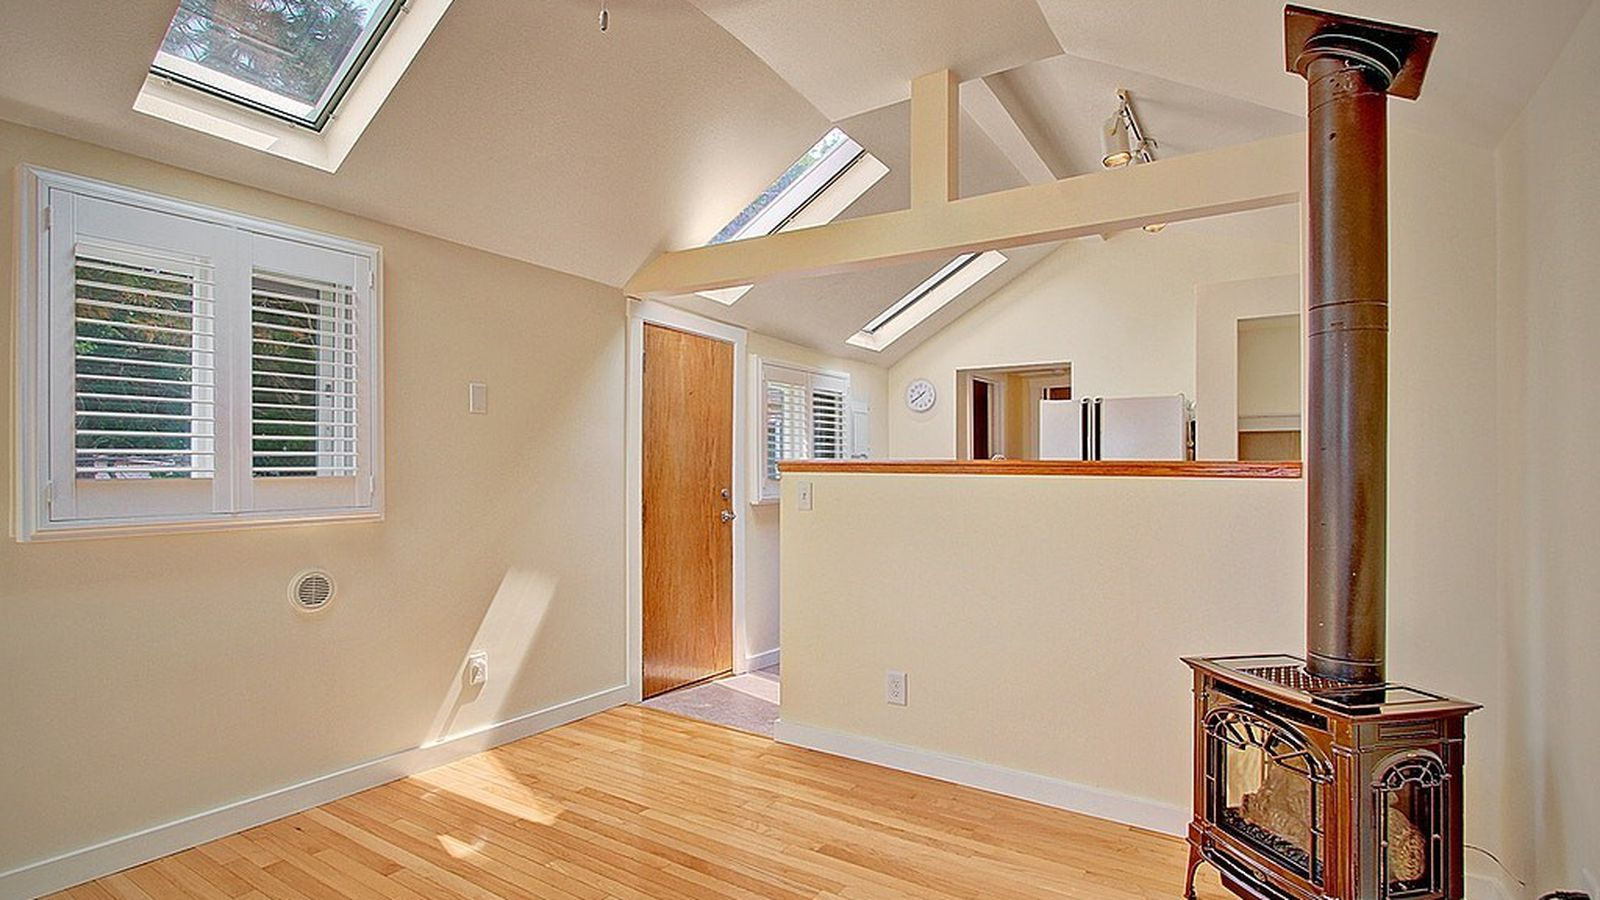 12 great seattle area starter homes curbed seattle for Seattle area home builders